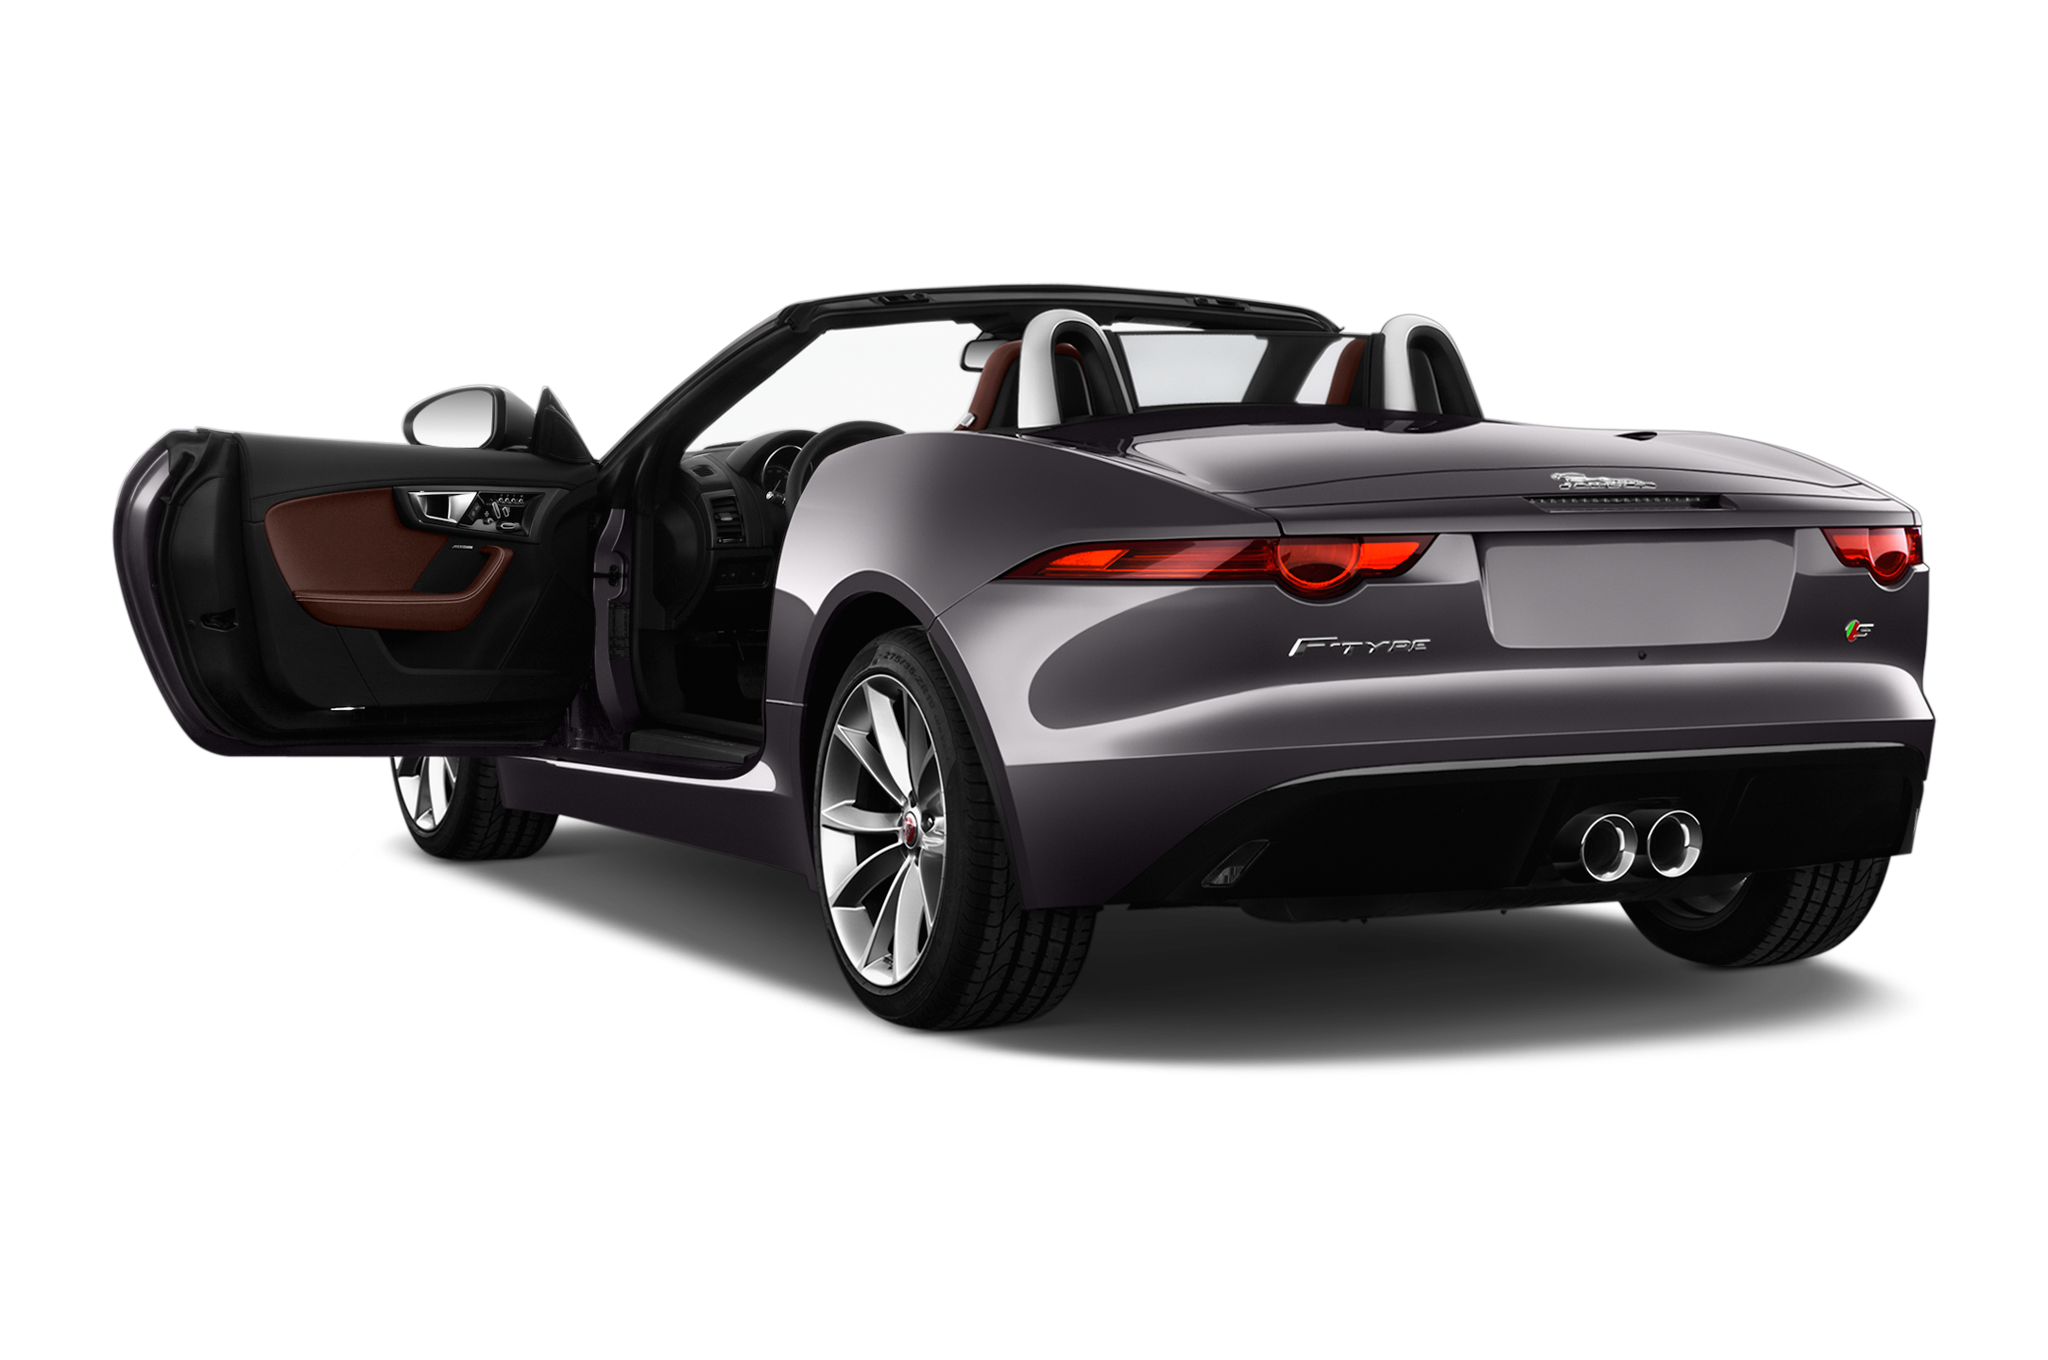 2017 jaguar f type convertible manual s lease 999 mo. Black Bedroom Furniture Sets. Home Design Ideas